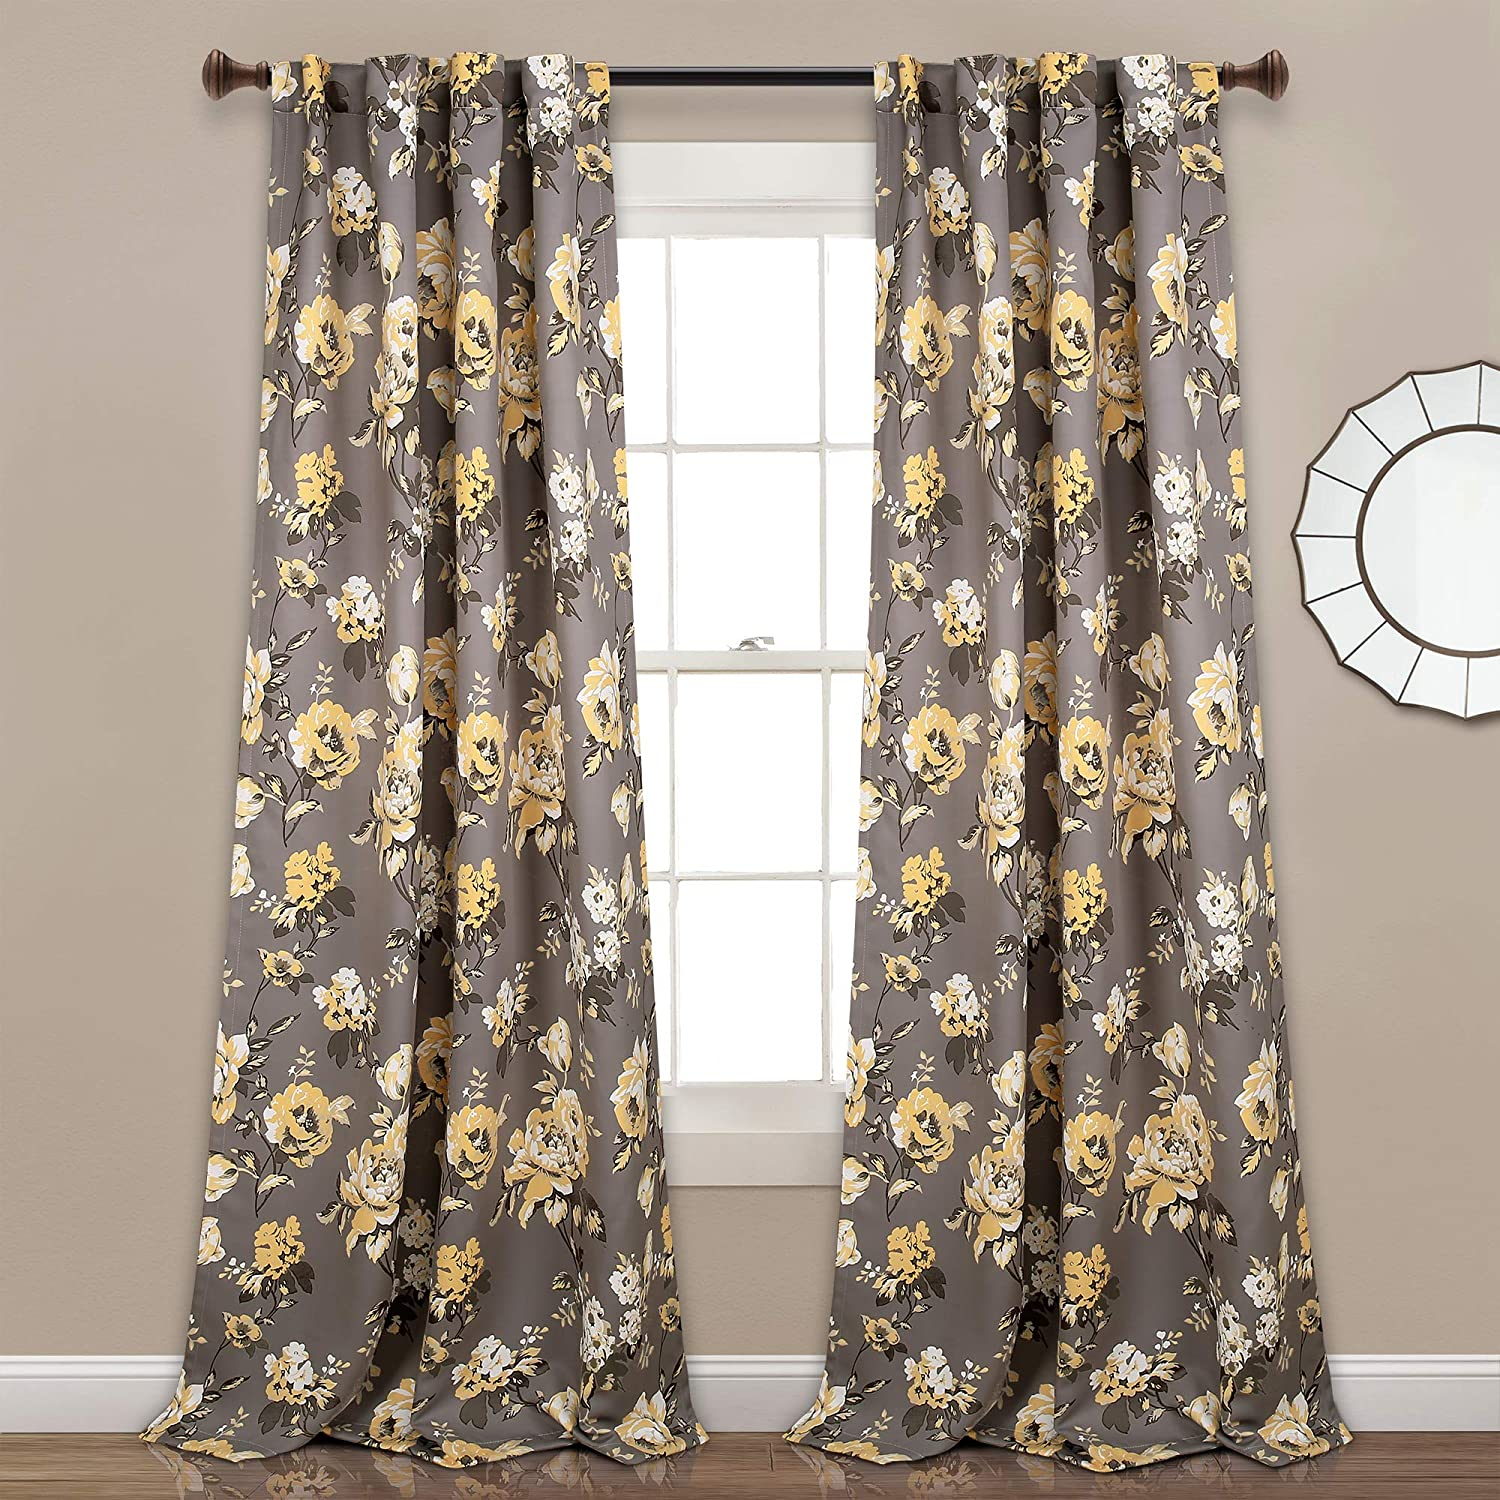 """Lush Decor, Gray and Yellow Tania Curtains 